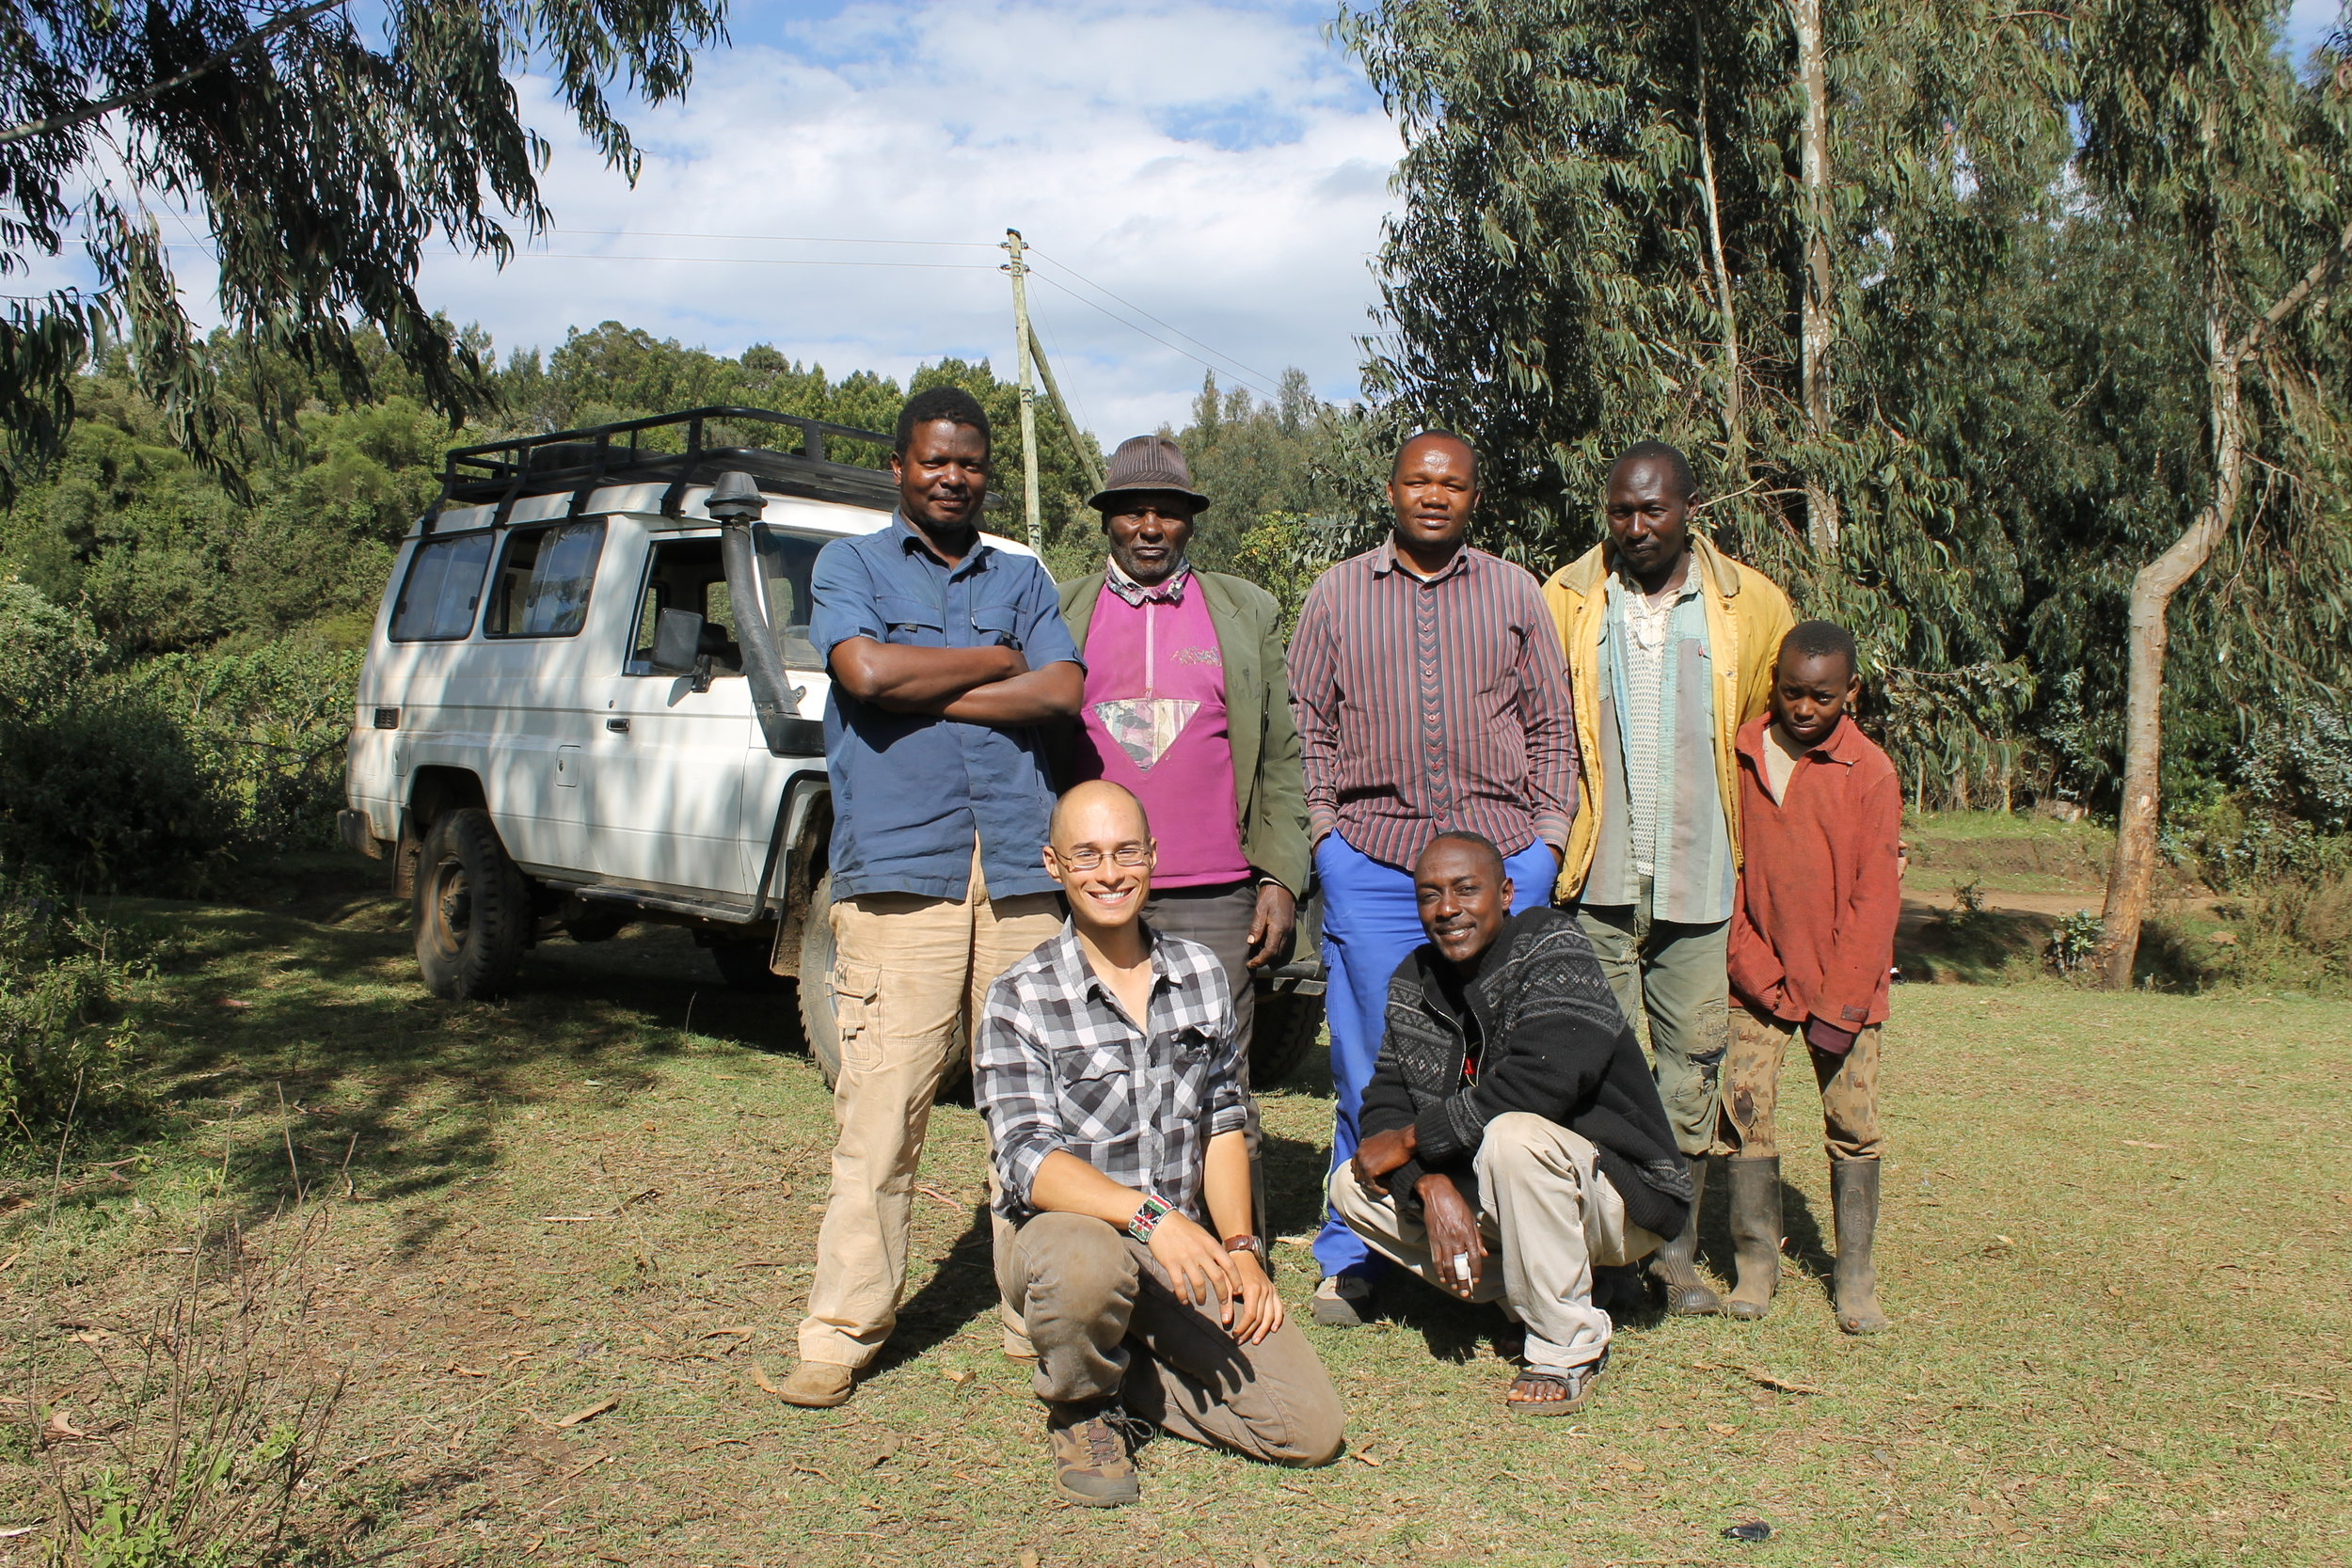 The 2014 Research Team. Back row from left to right - Francis Nduulu Mutua, John Kimani, John Munyiri, F. N'yany'a. Front, left to right- Steve Goldstein, M. Kukenga.